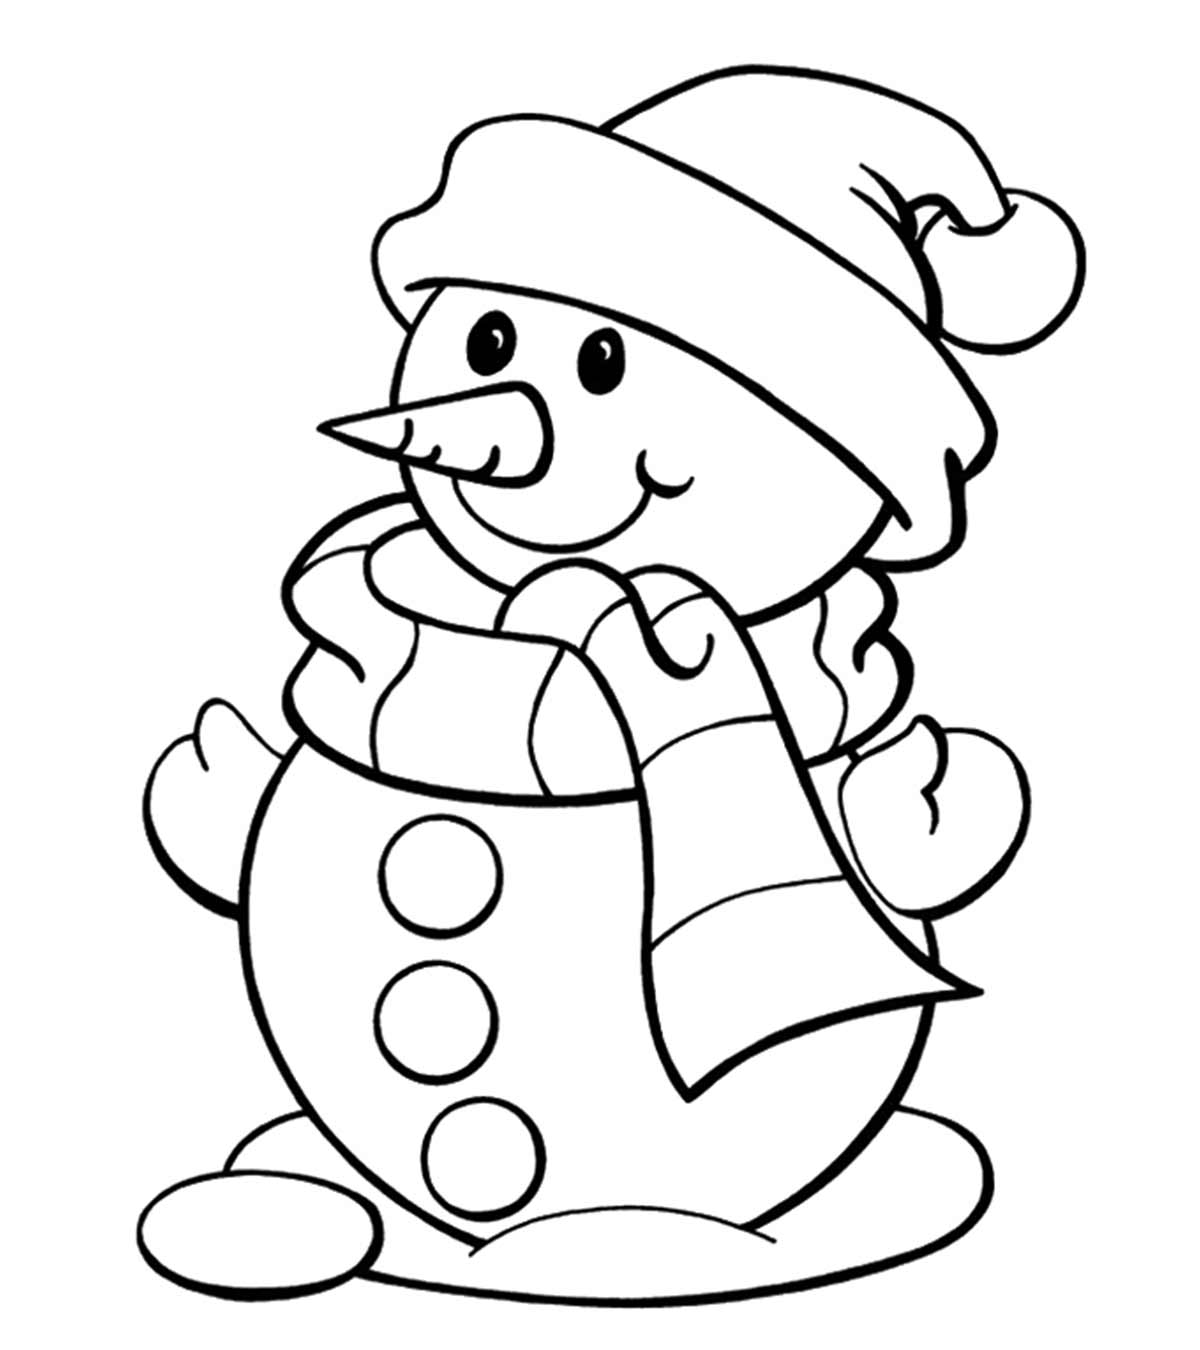 Snowman Coloring Page Pages Colouring Lehuuphuc To ...